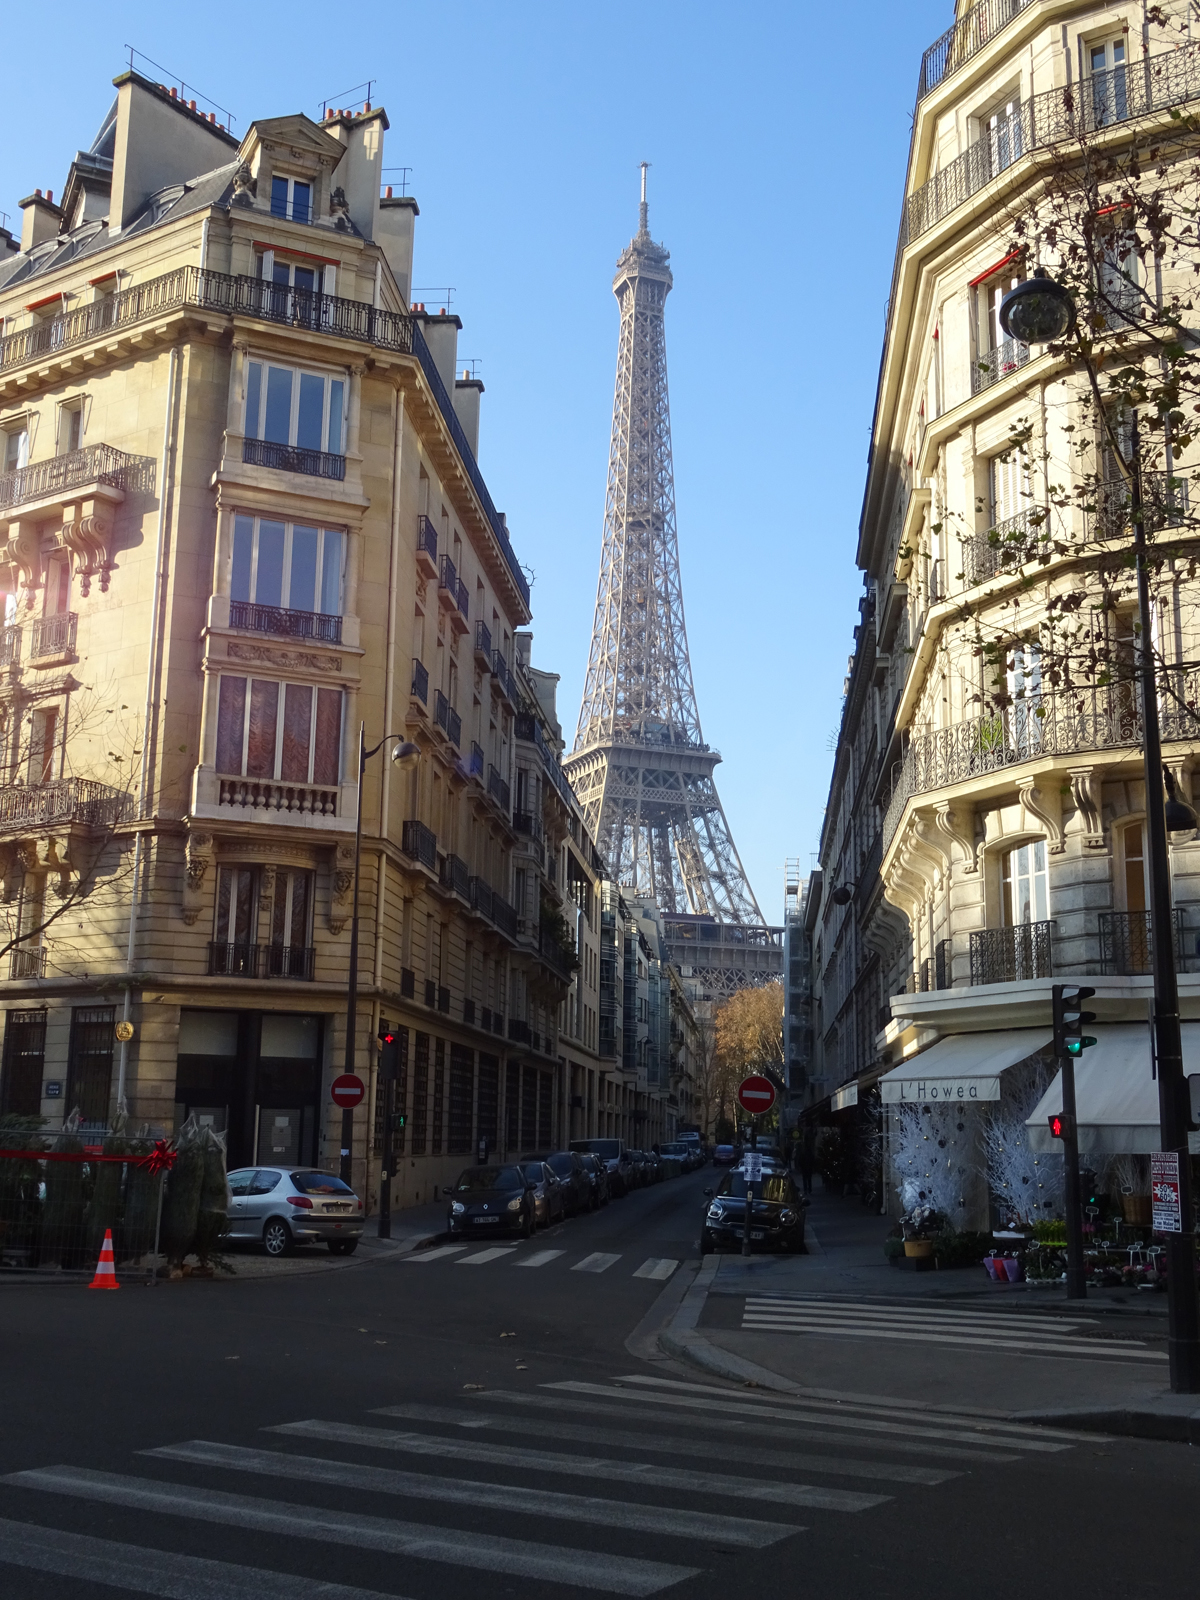 Streets near the Eiffel tower